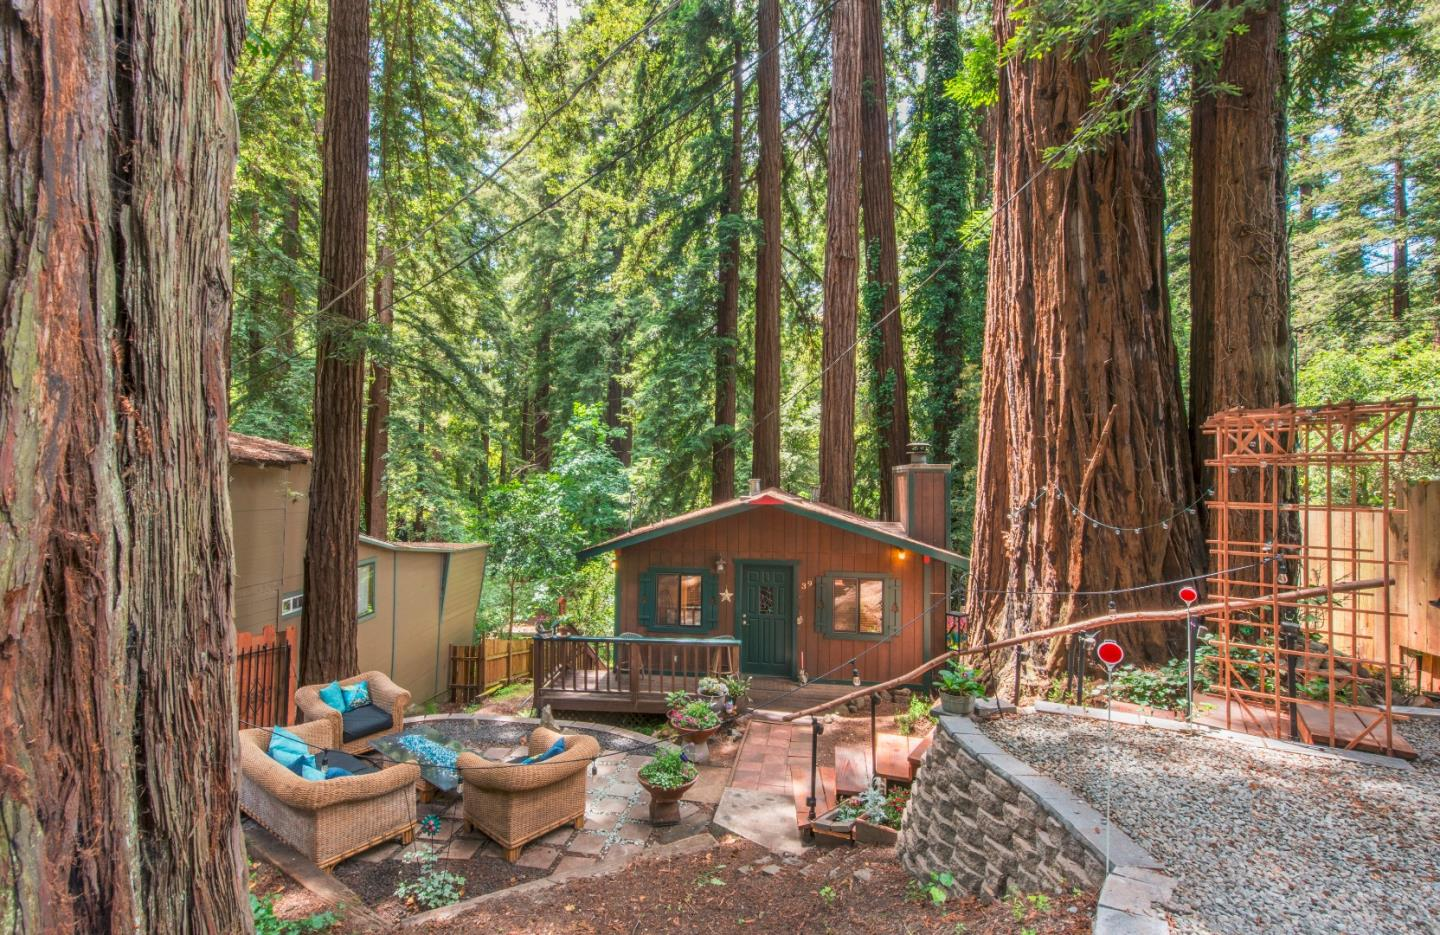 A tiny cabin amidst towering green redwood trees.